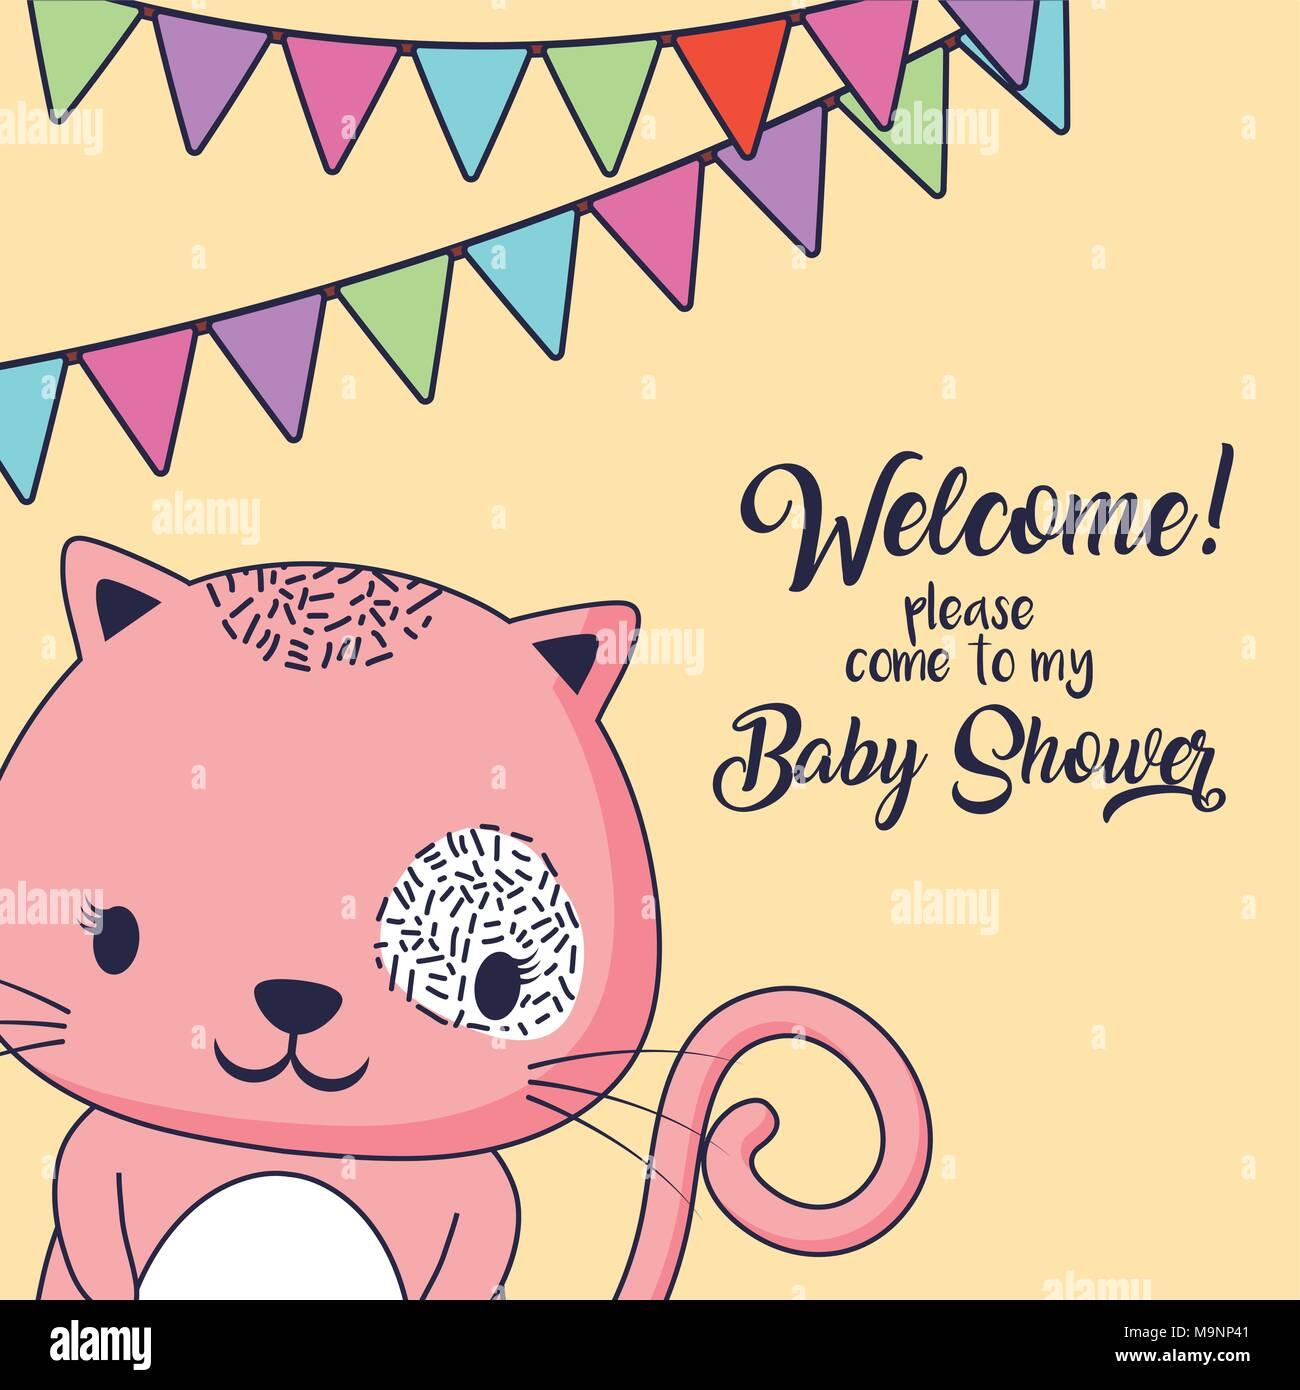 Baby Shower Invitation Design With Cute Cat And Decorative Pennants